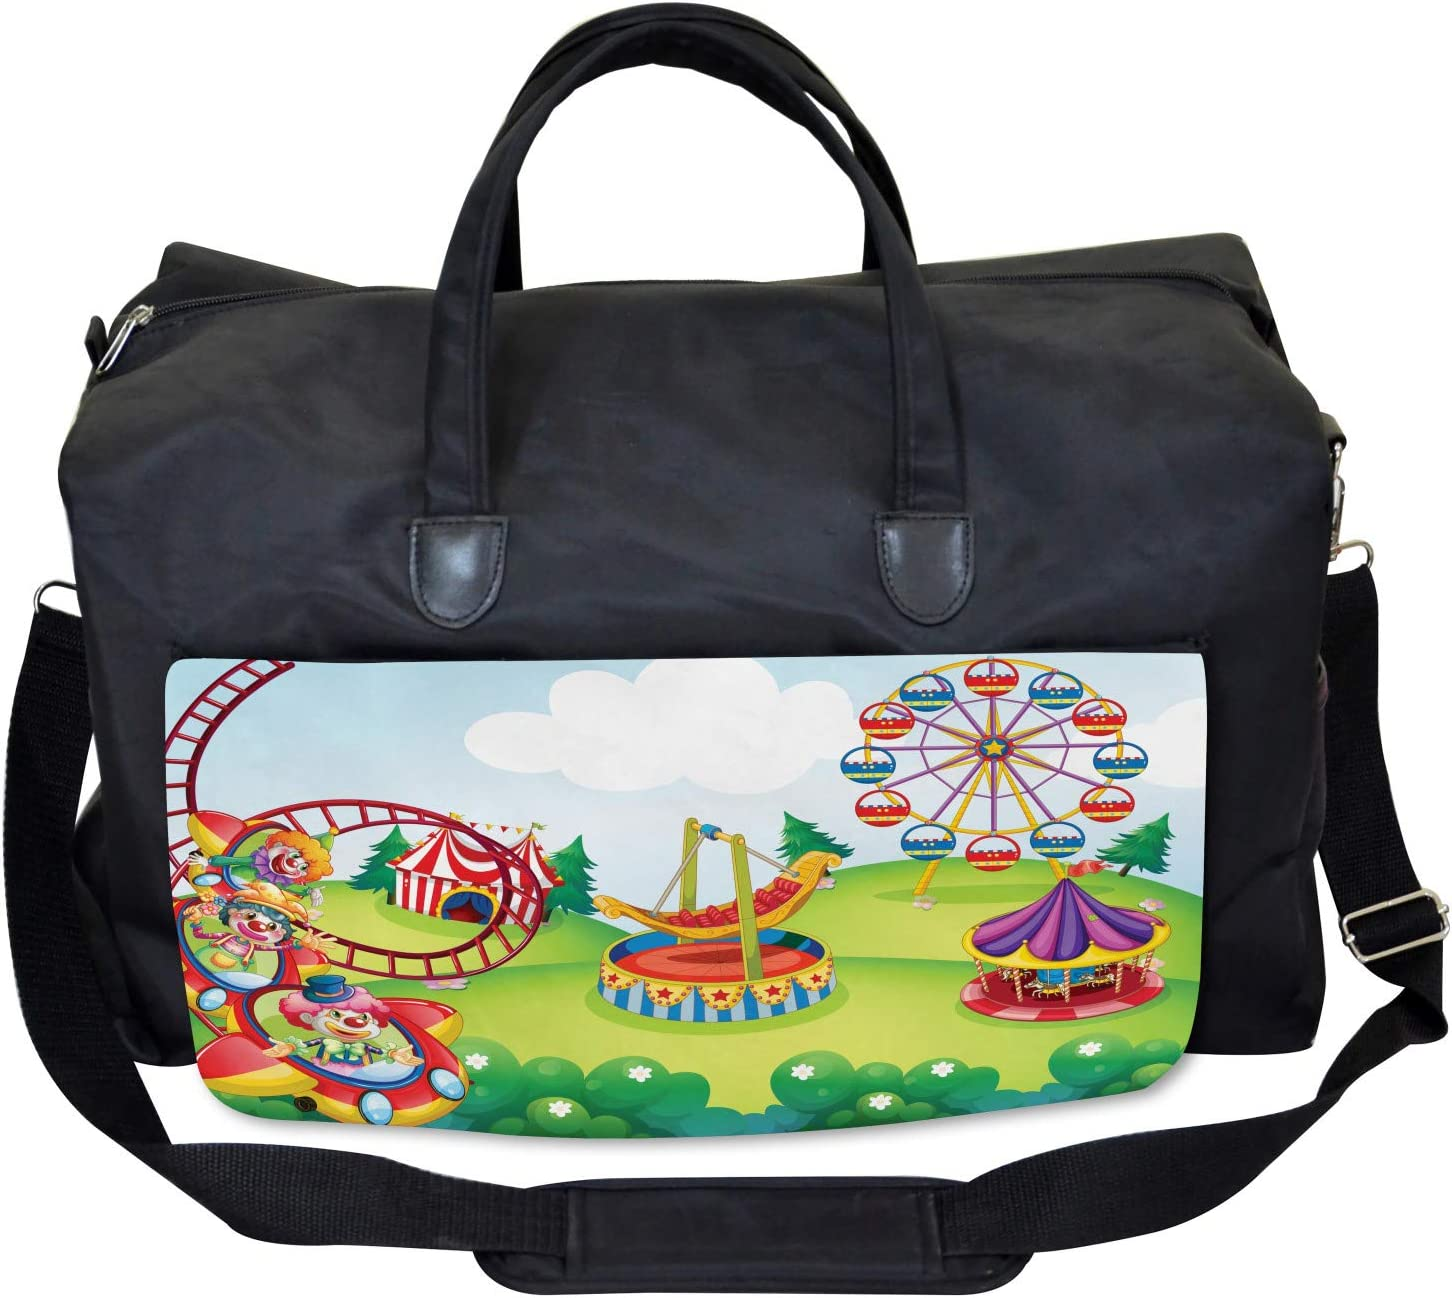 Circus and Theme Park Large Weekender Carry-on Ambesonne Colorful Gym Bag